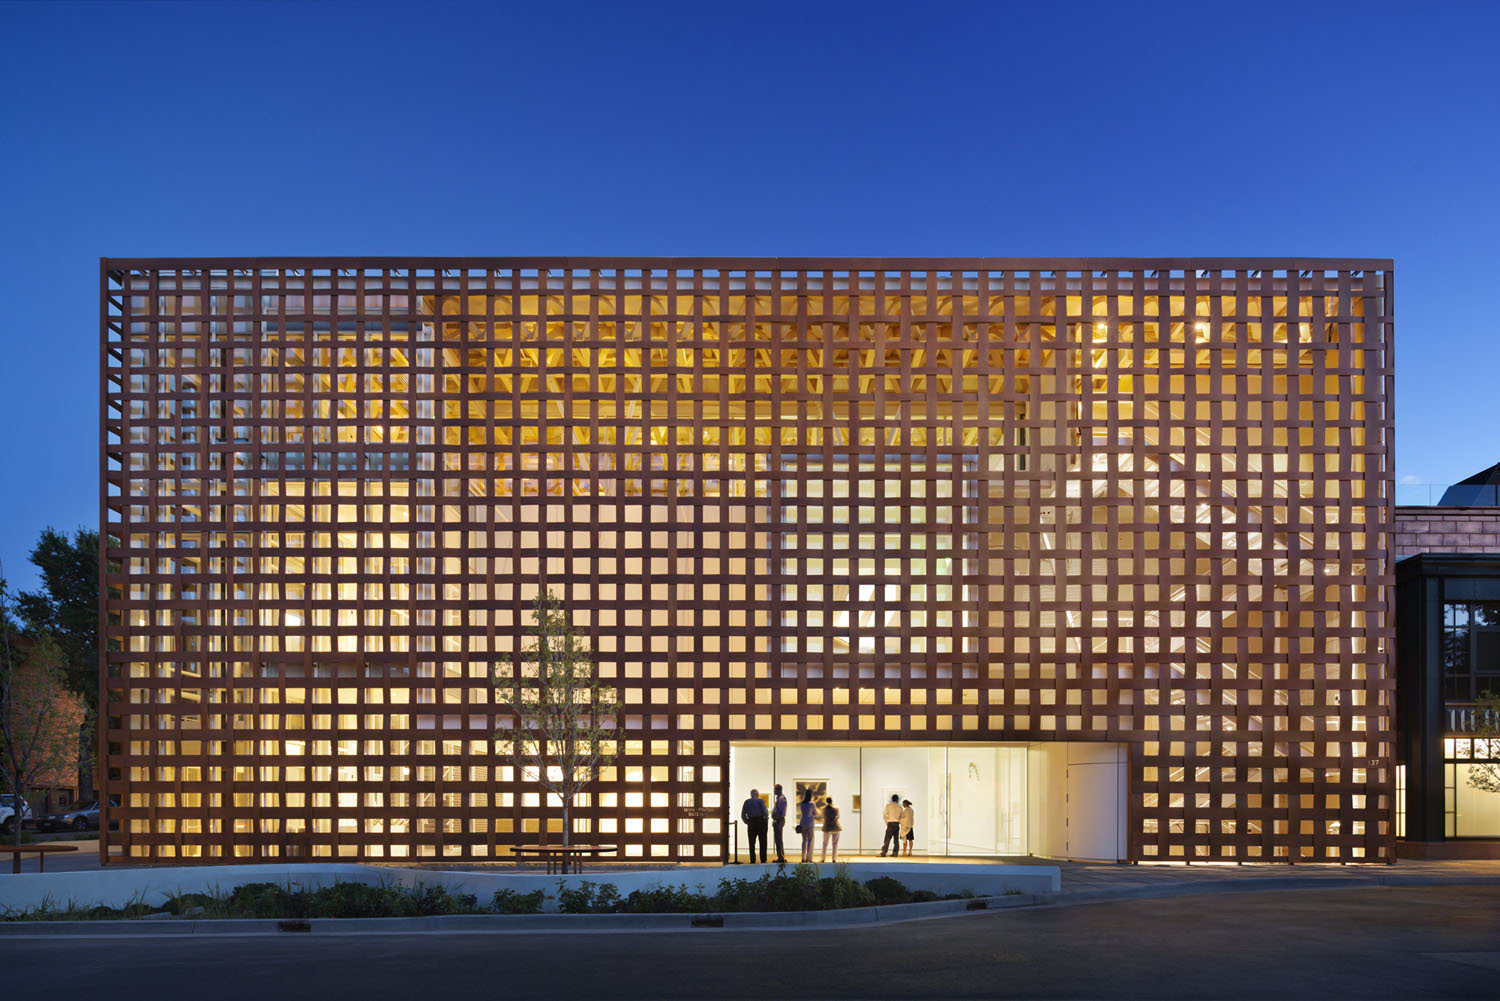 mm_Aspen Art Museum design by Shigeru Ban Architects_01